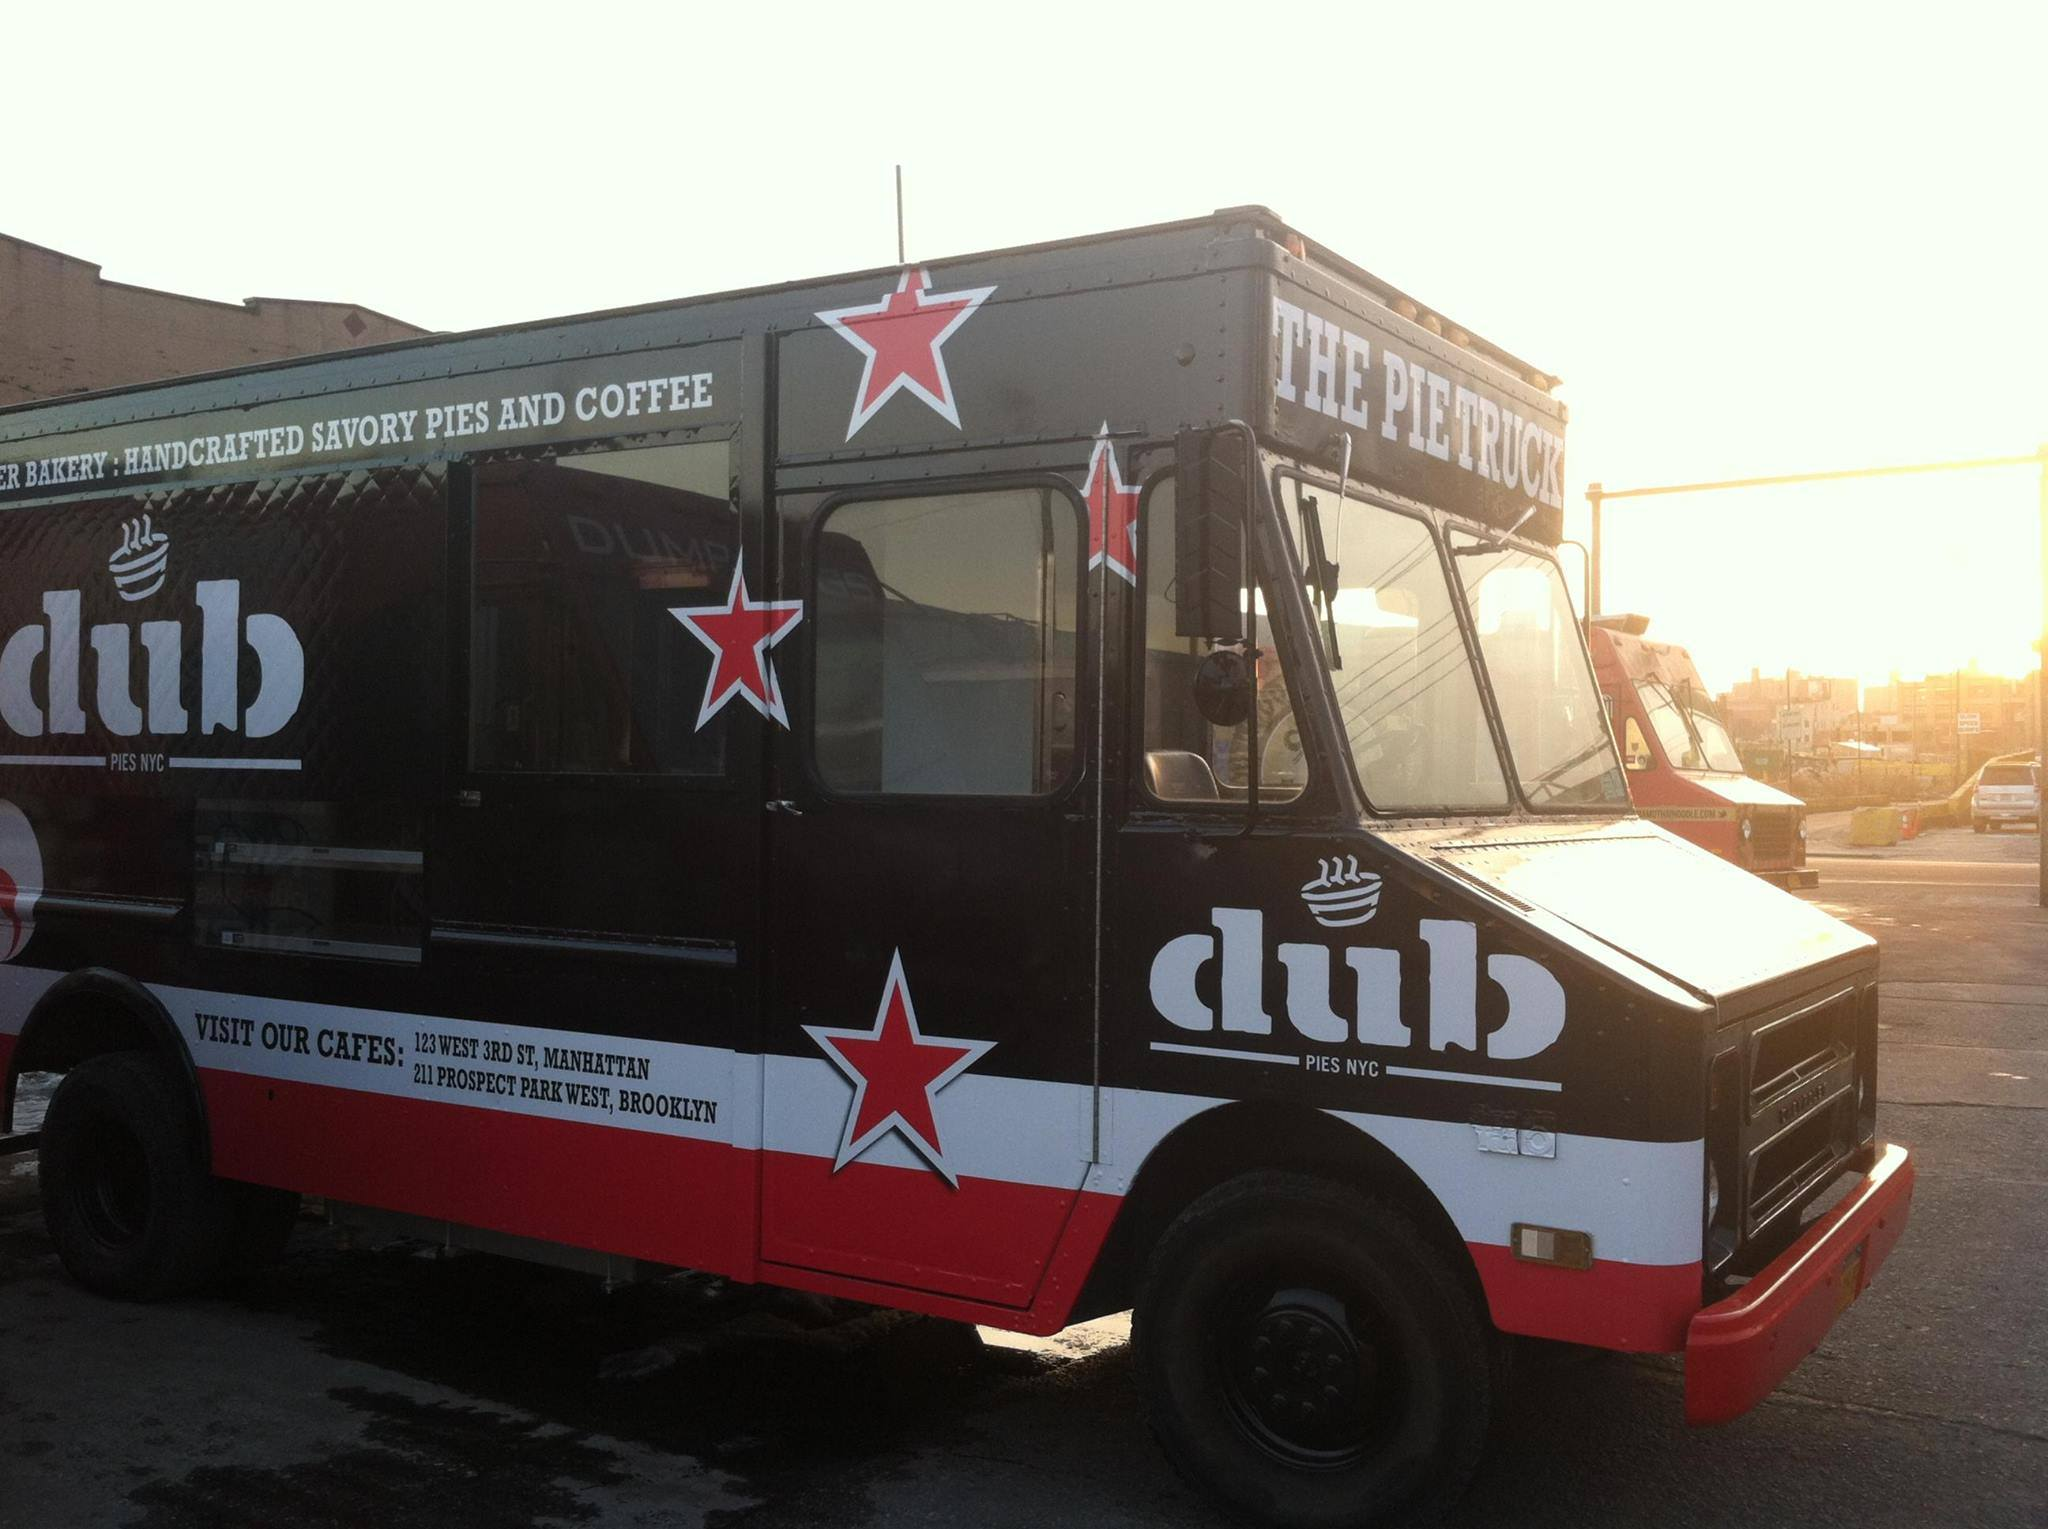 Dub Pies food truck bakery catering